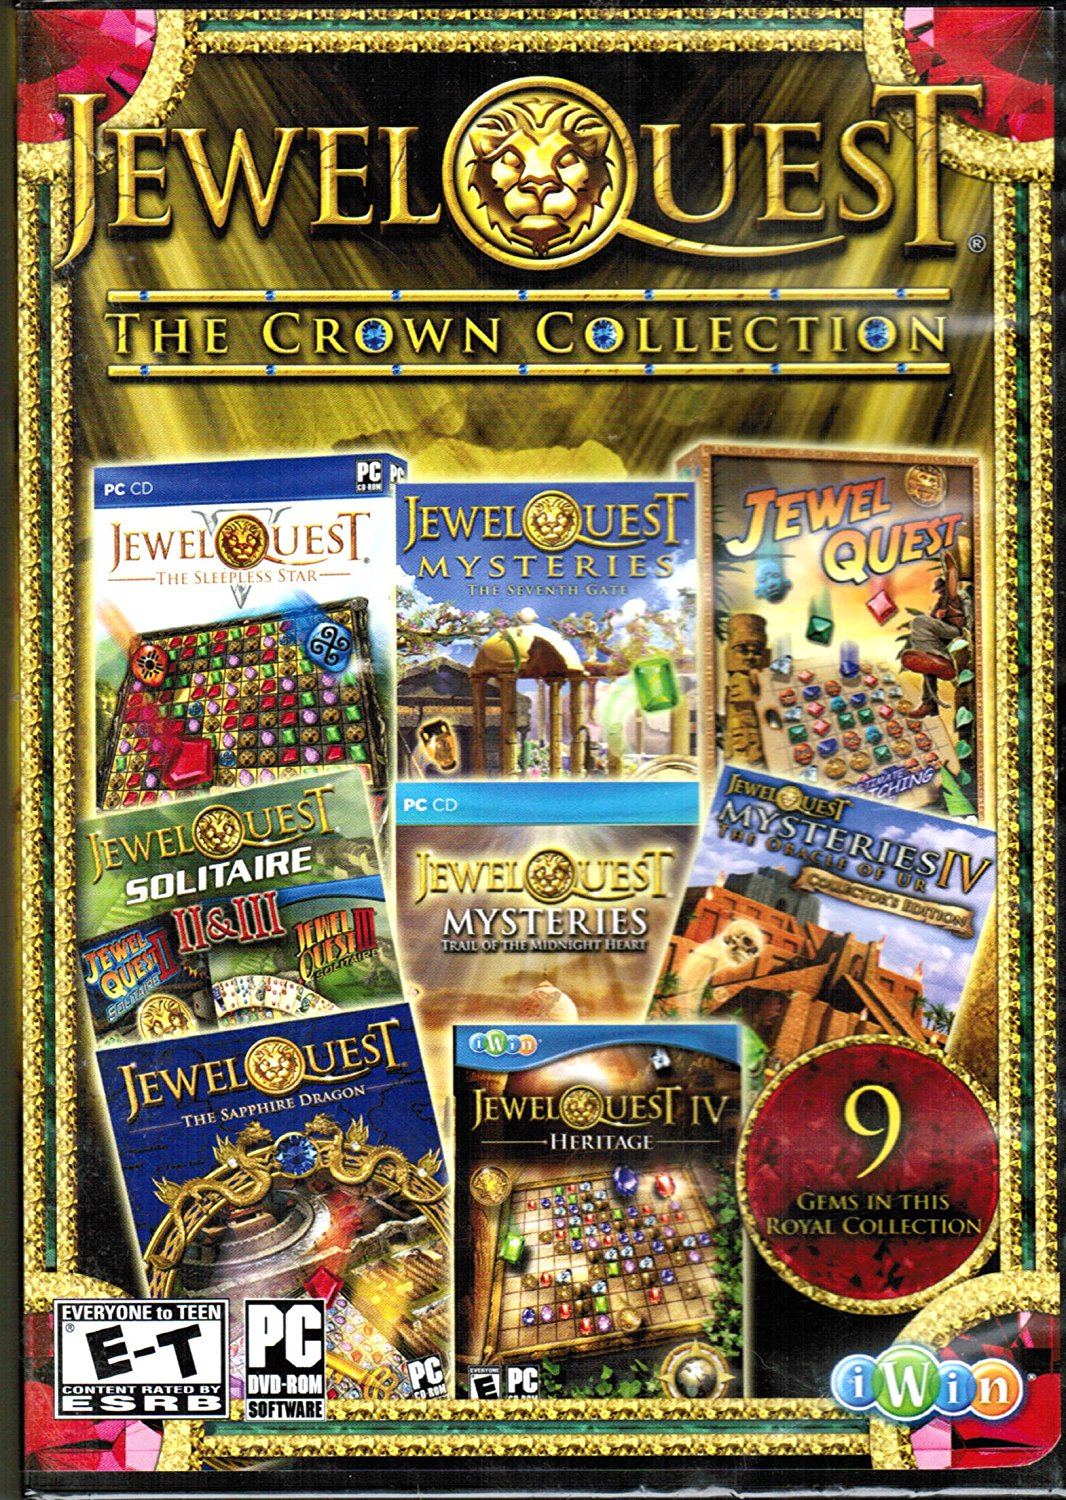 Jewel Quest The Crown Collection (PC Games), By iWin From USA by iWin